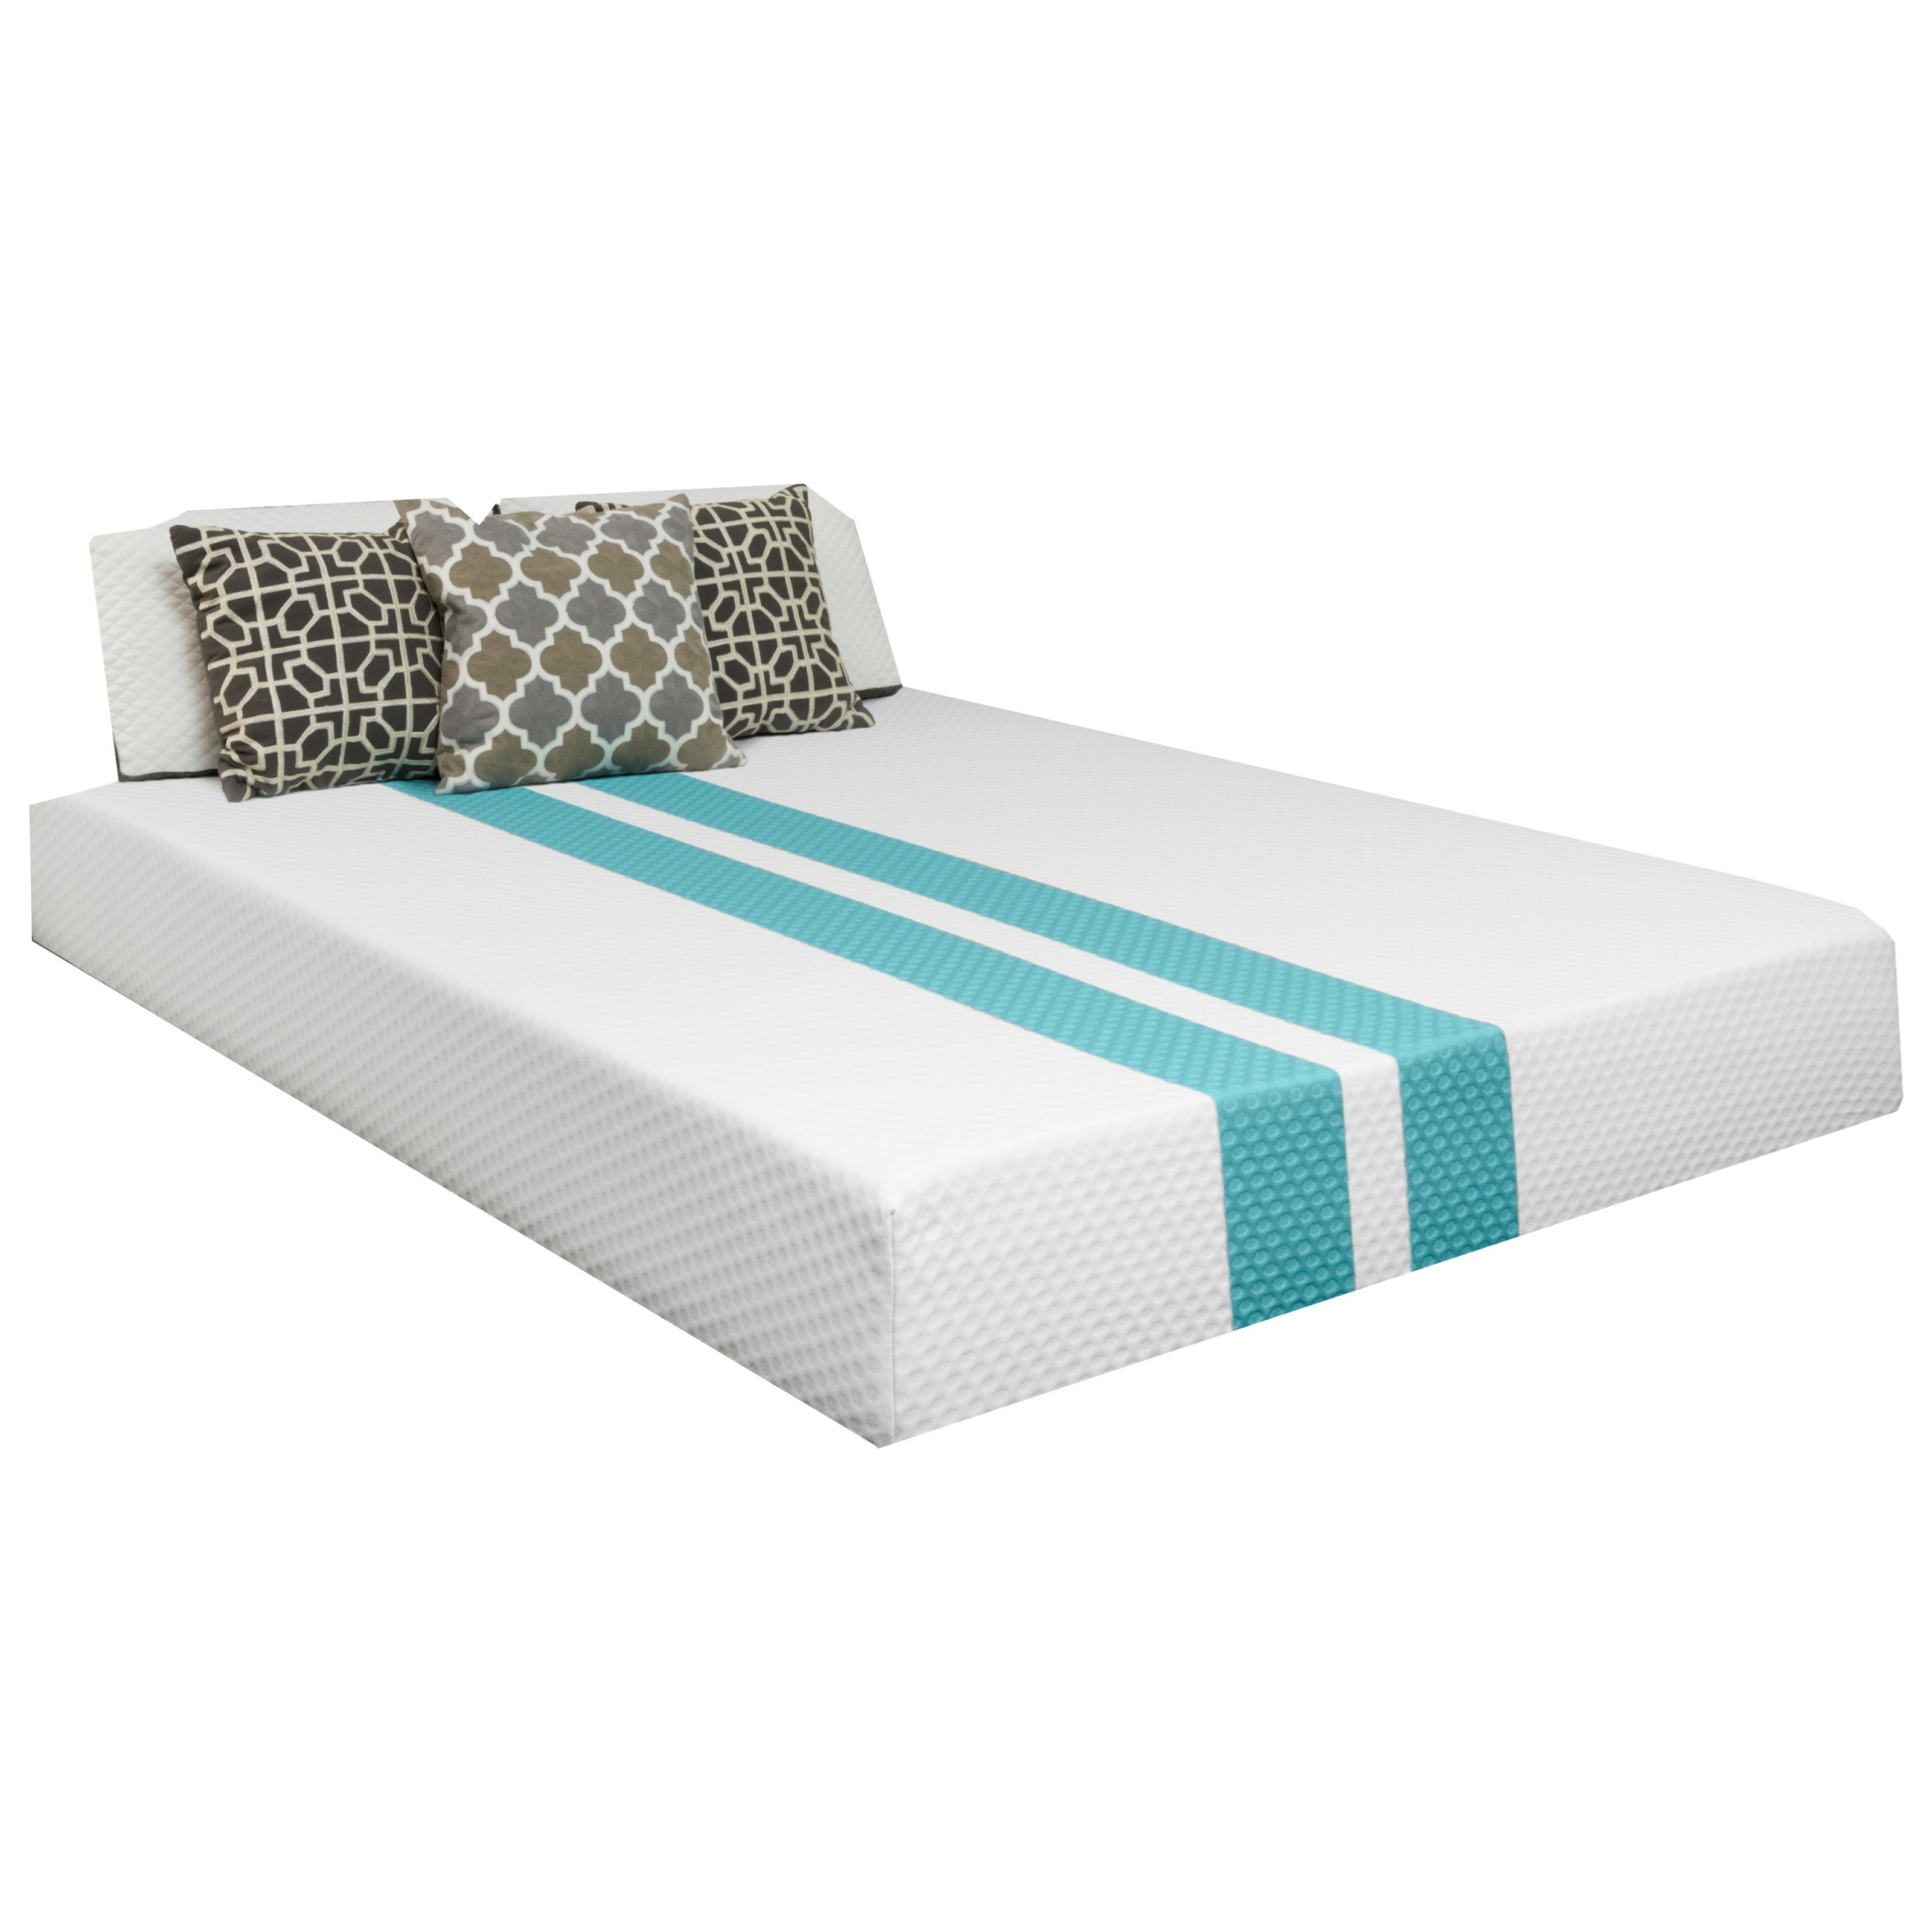 Twin XL Hybrid Cooling Plush Mattress